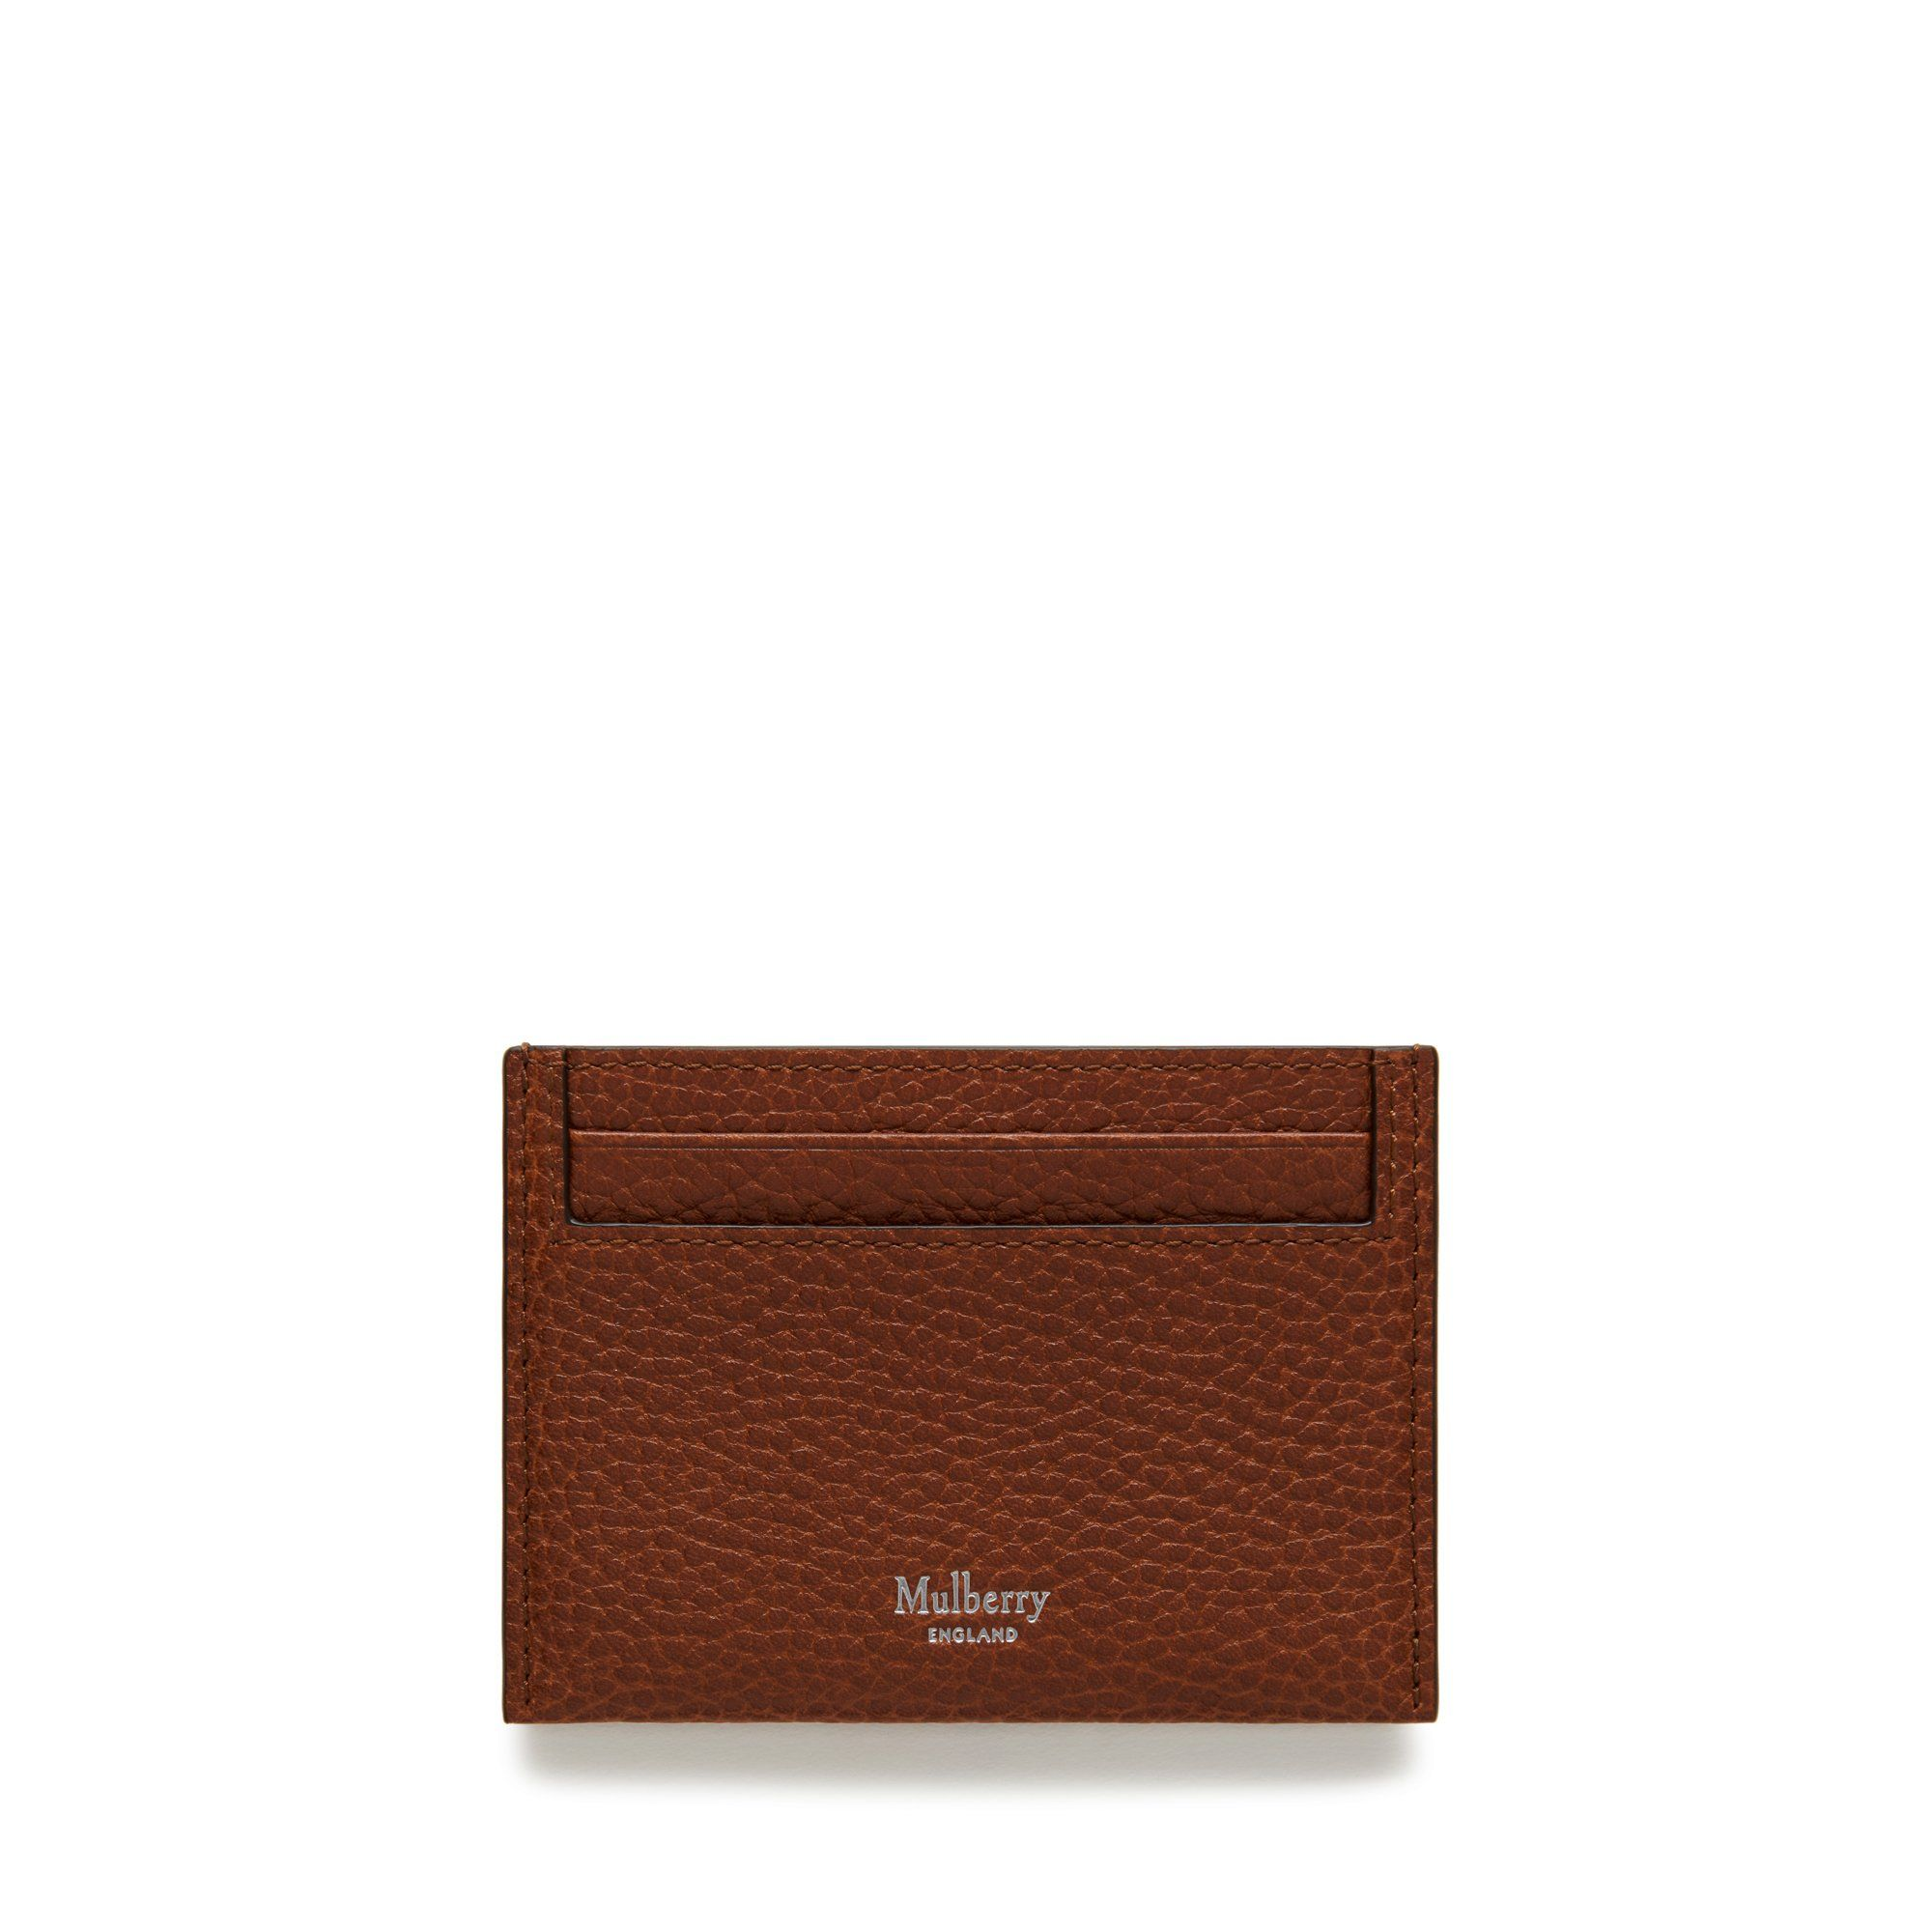 690abe21c8 Small Leather Goods